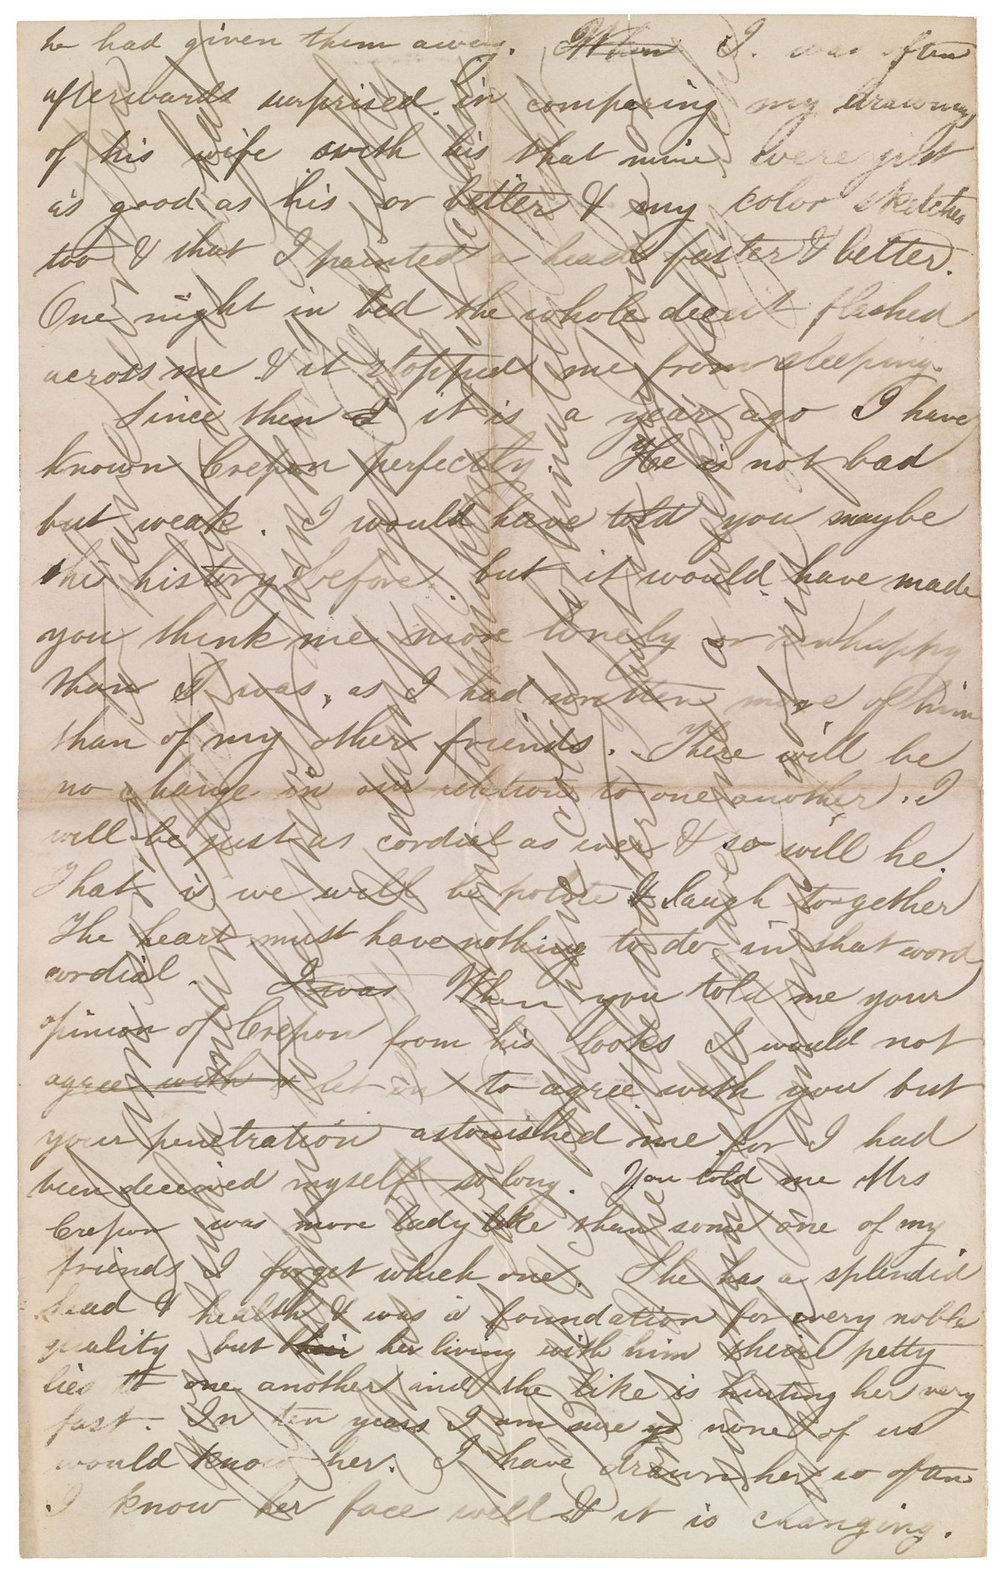 Thomas Eakins, letter to Frances Eakins, March 26, 1869, continued